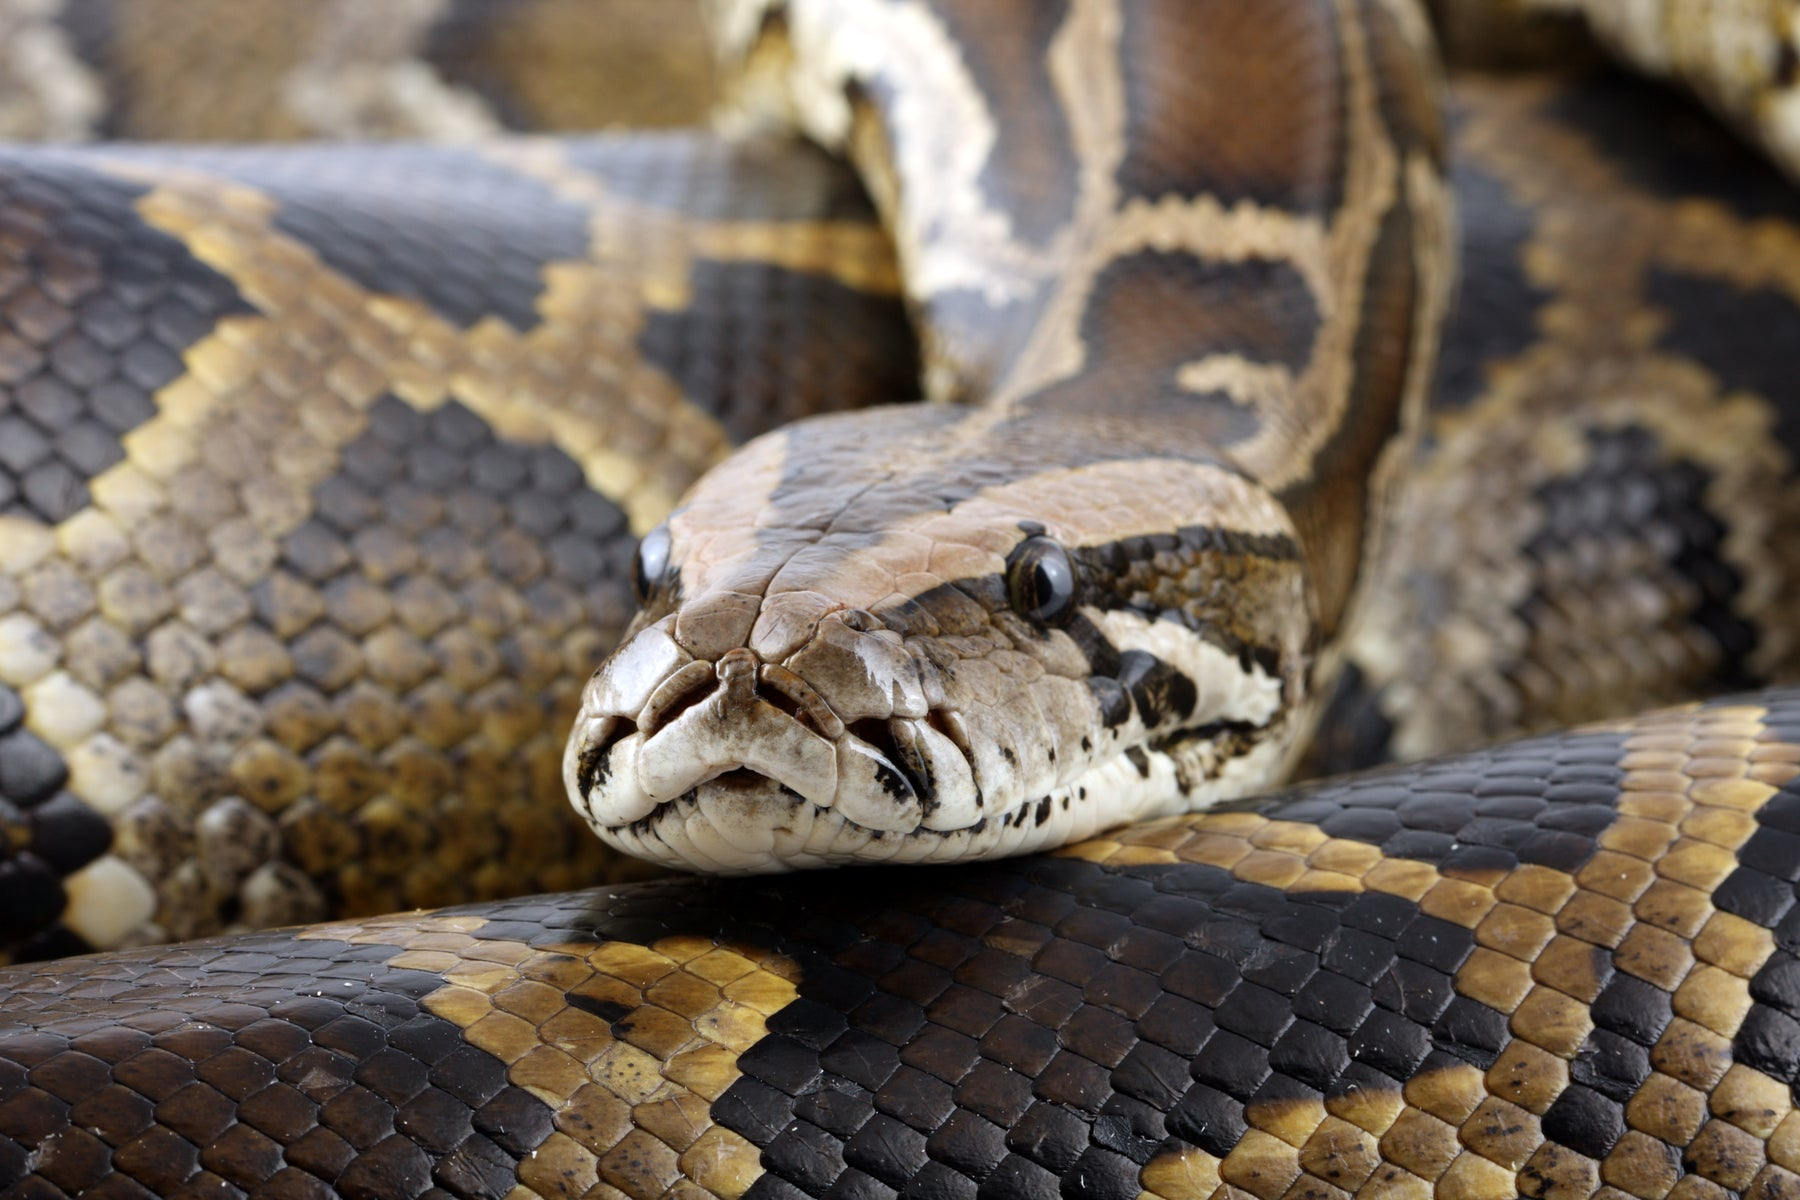 How to Care for Your Burmese Python